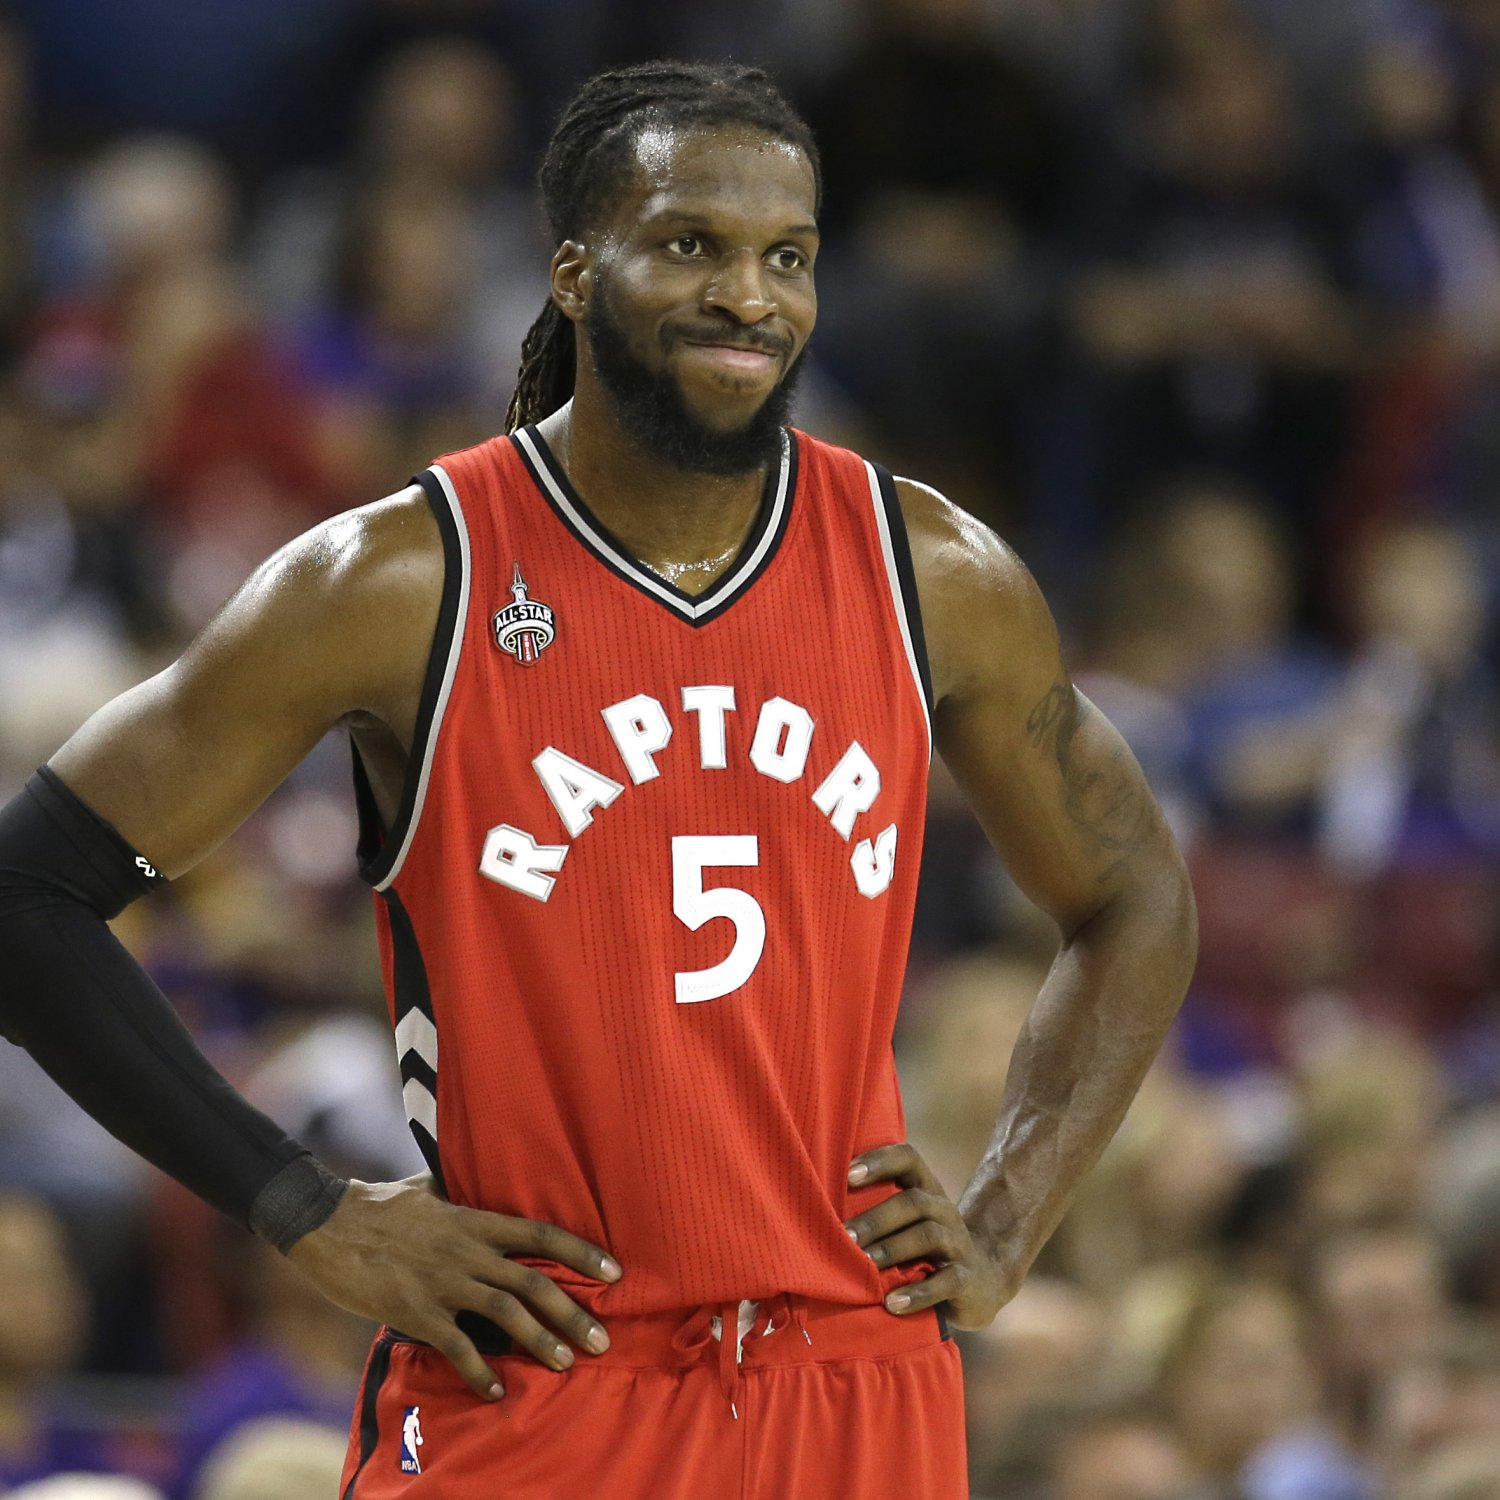 950257bc2b2 ... fucker so I m expecting to see a lot of closing lineups involving  either Patrick Patterson or Jared Sullinger as the big man. Always bet  against change ...